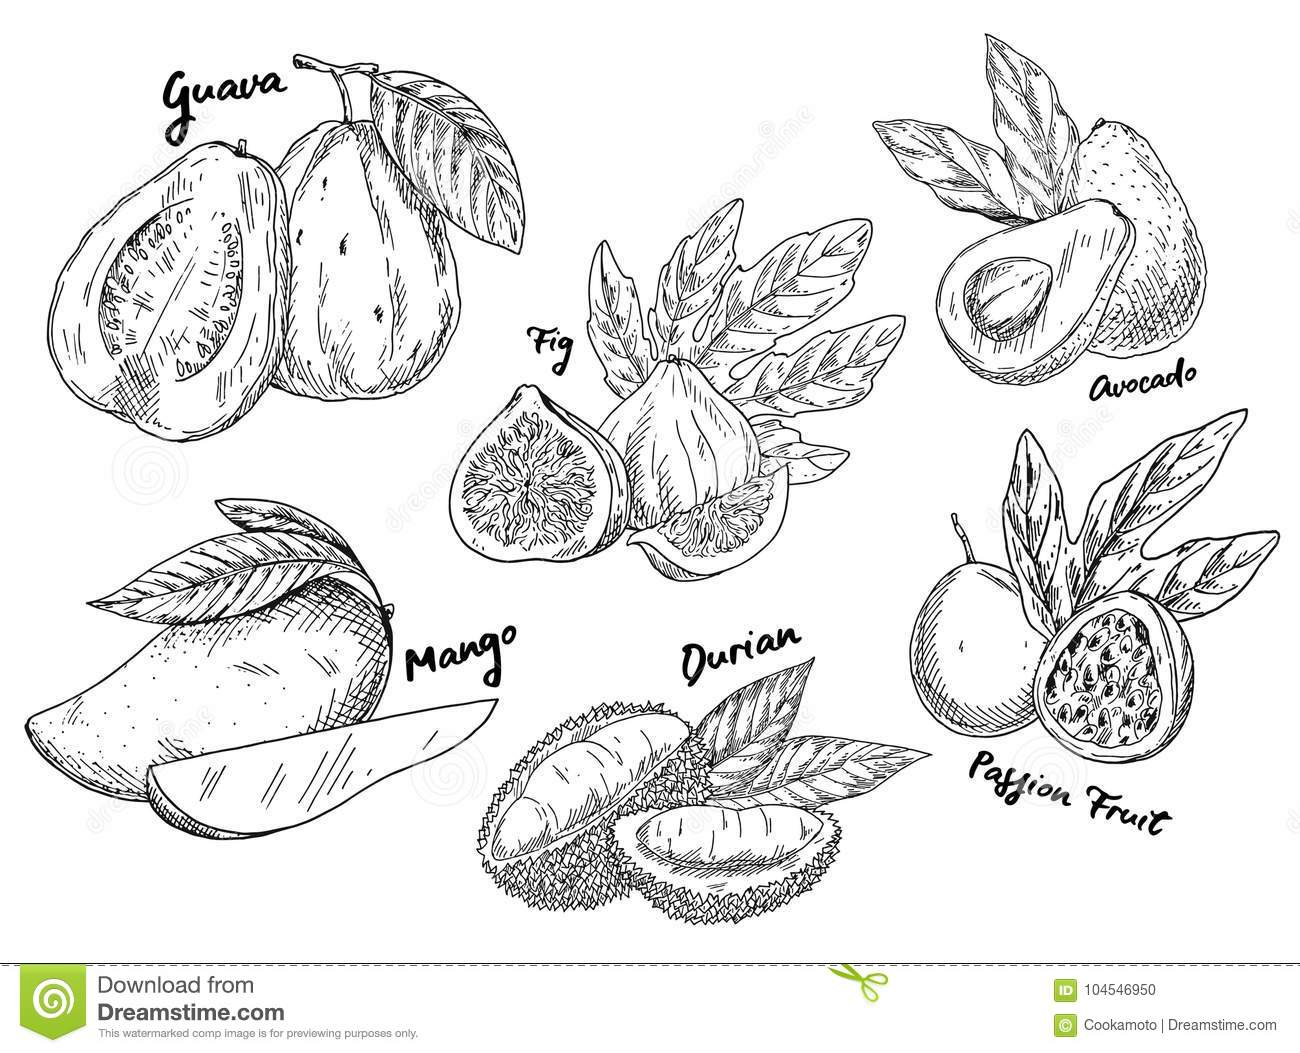 Sketch of guava and avocado fig and mango durian